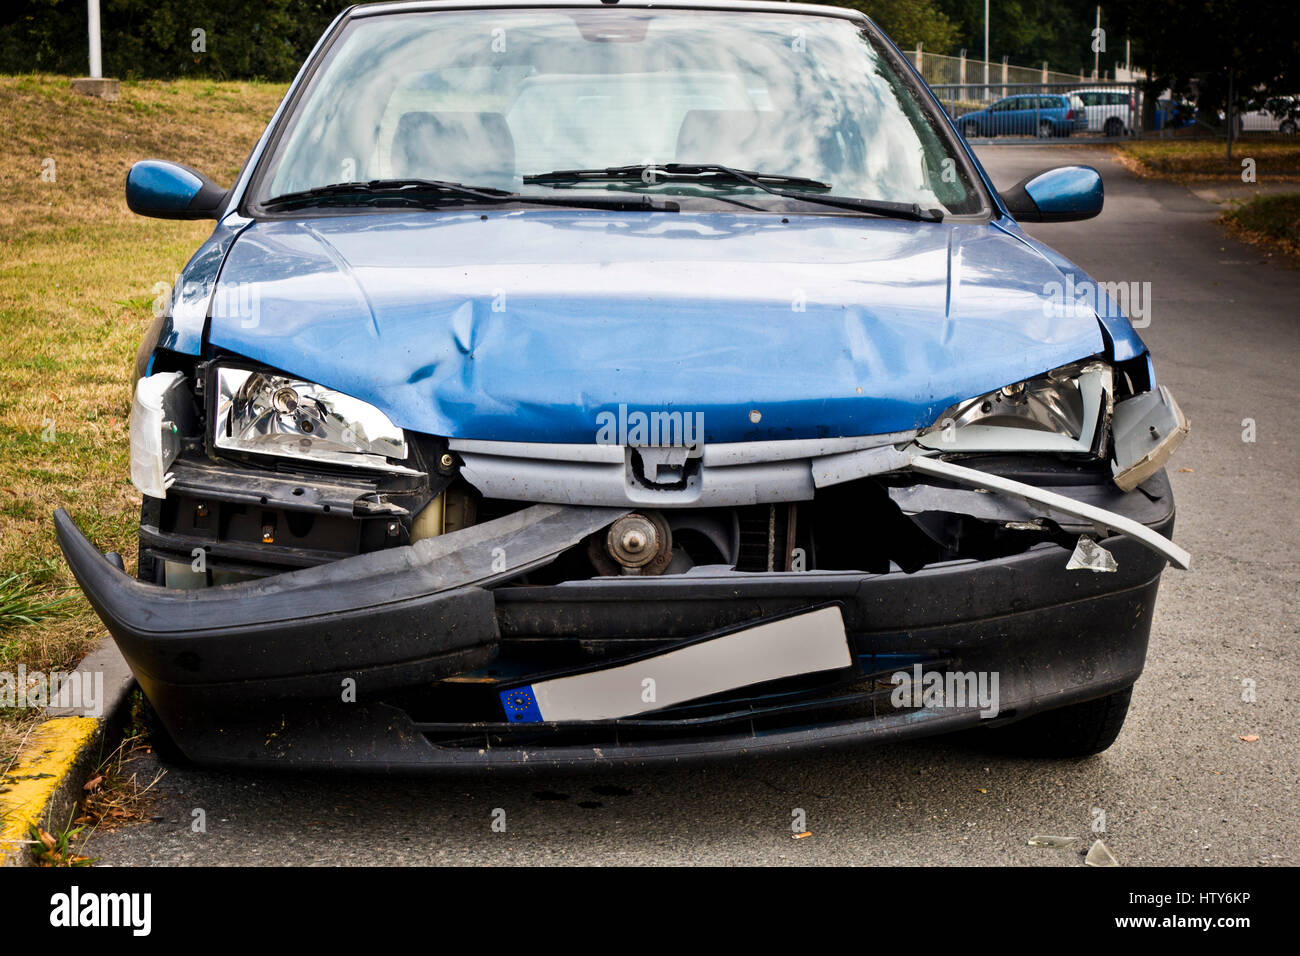 crashed car after accident - Stock Image